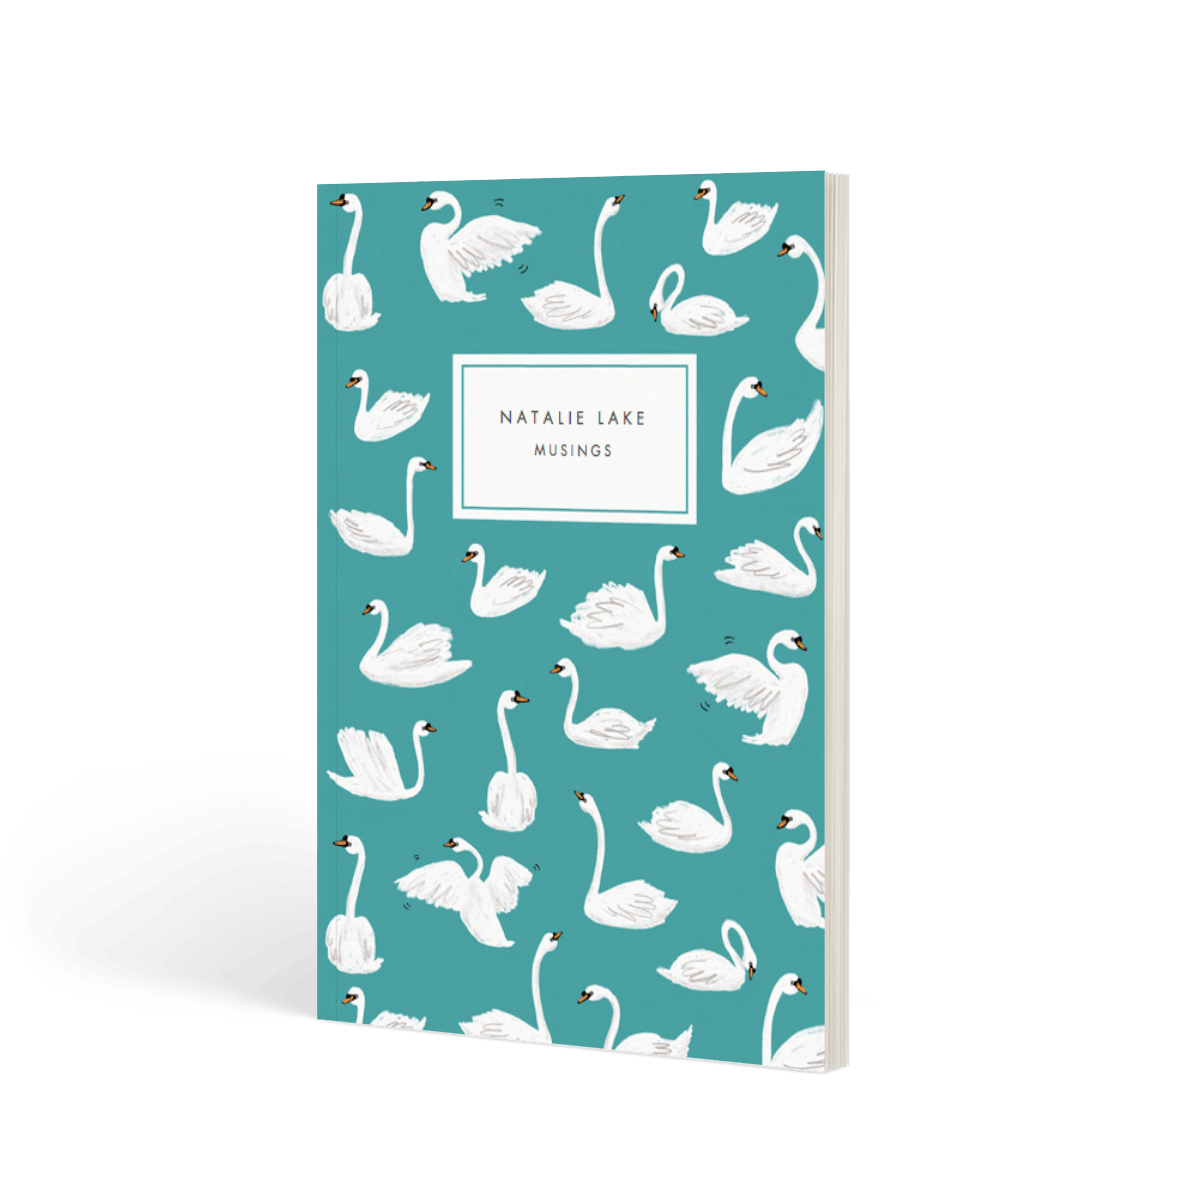 Https%3a%2f%2fwww.papier.com%2fproduct image%2f37602%2f6%2fblue swans 9495 front 1527696312.png?ixlib=rb 1.1